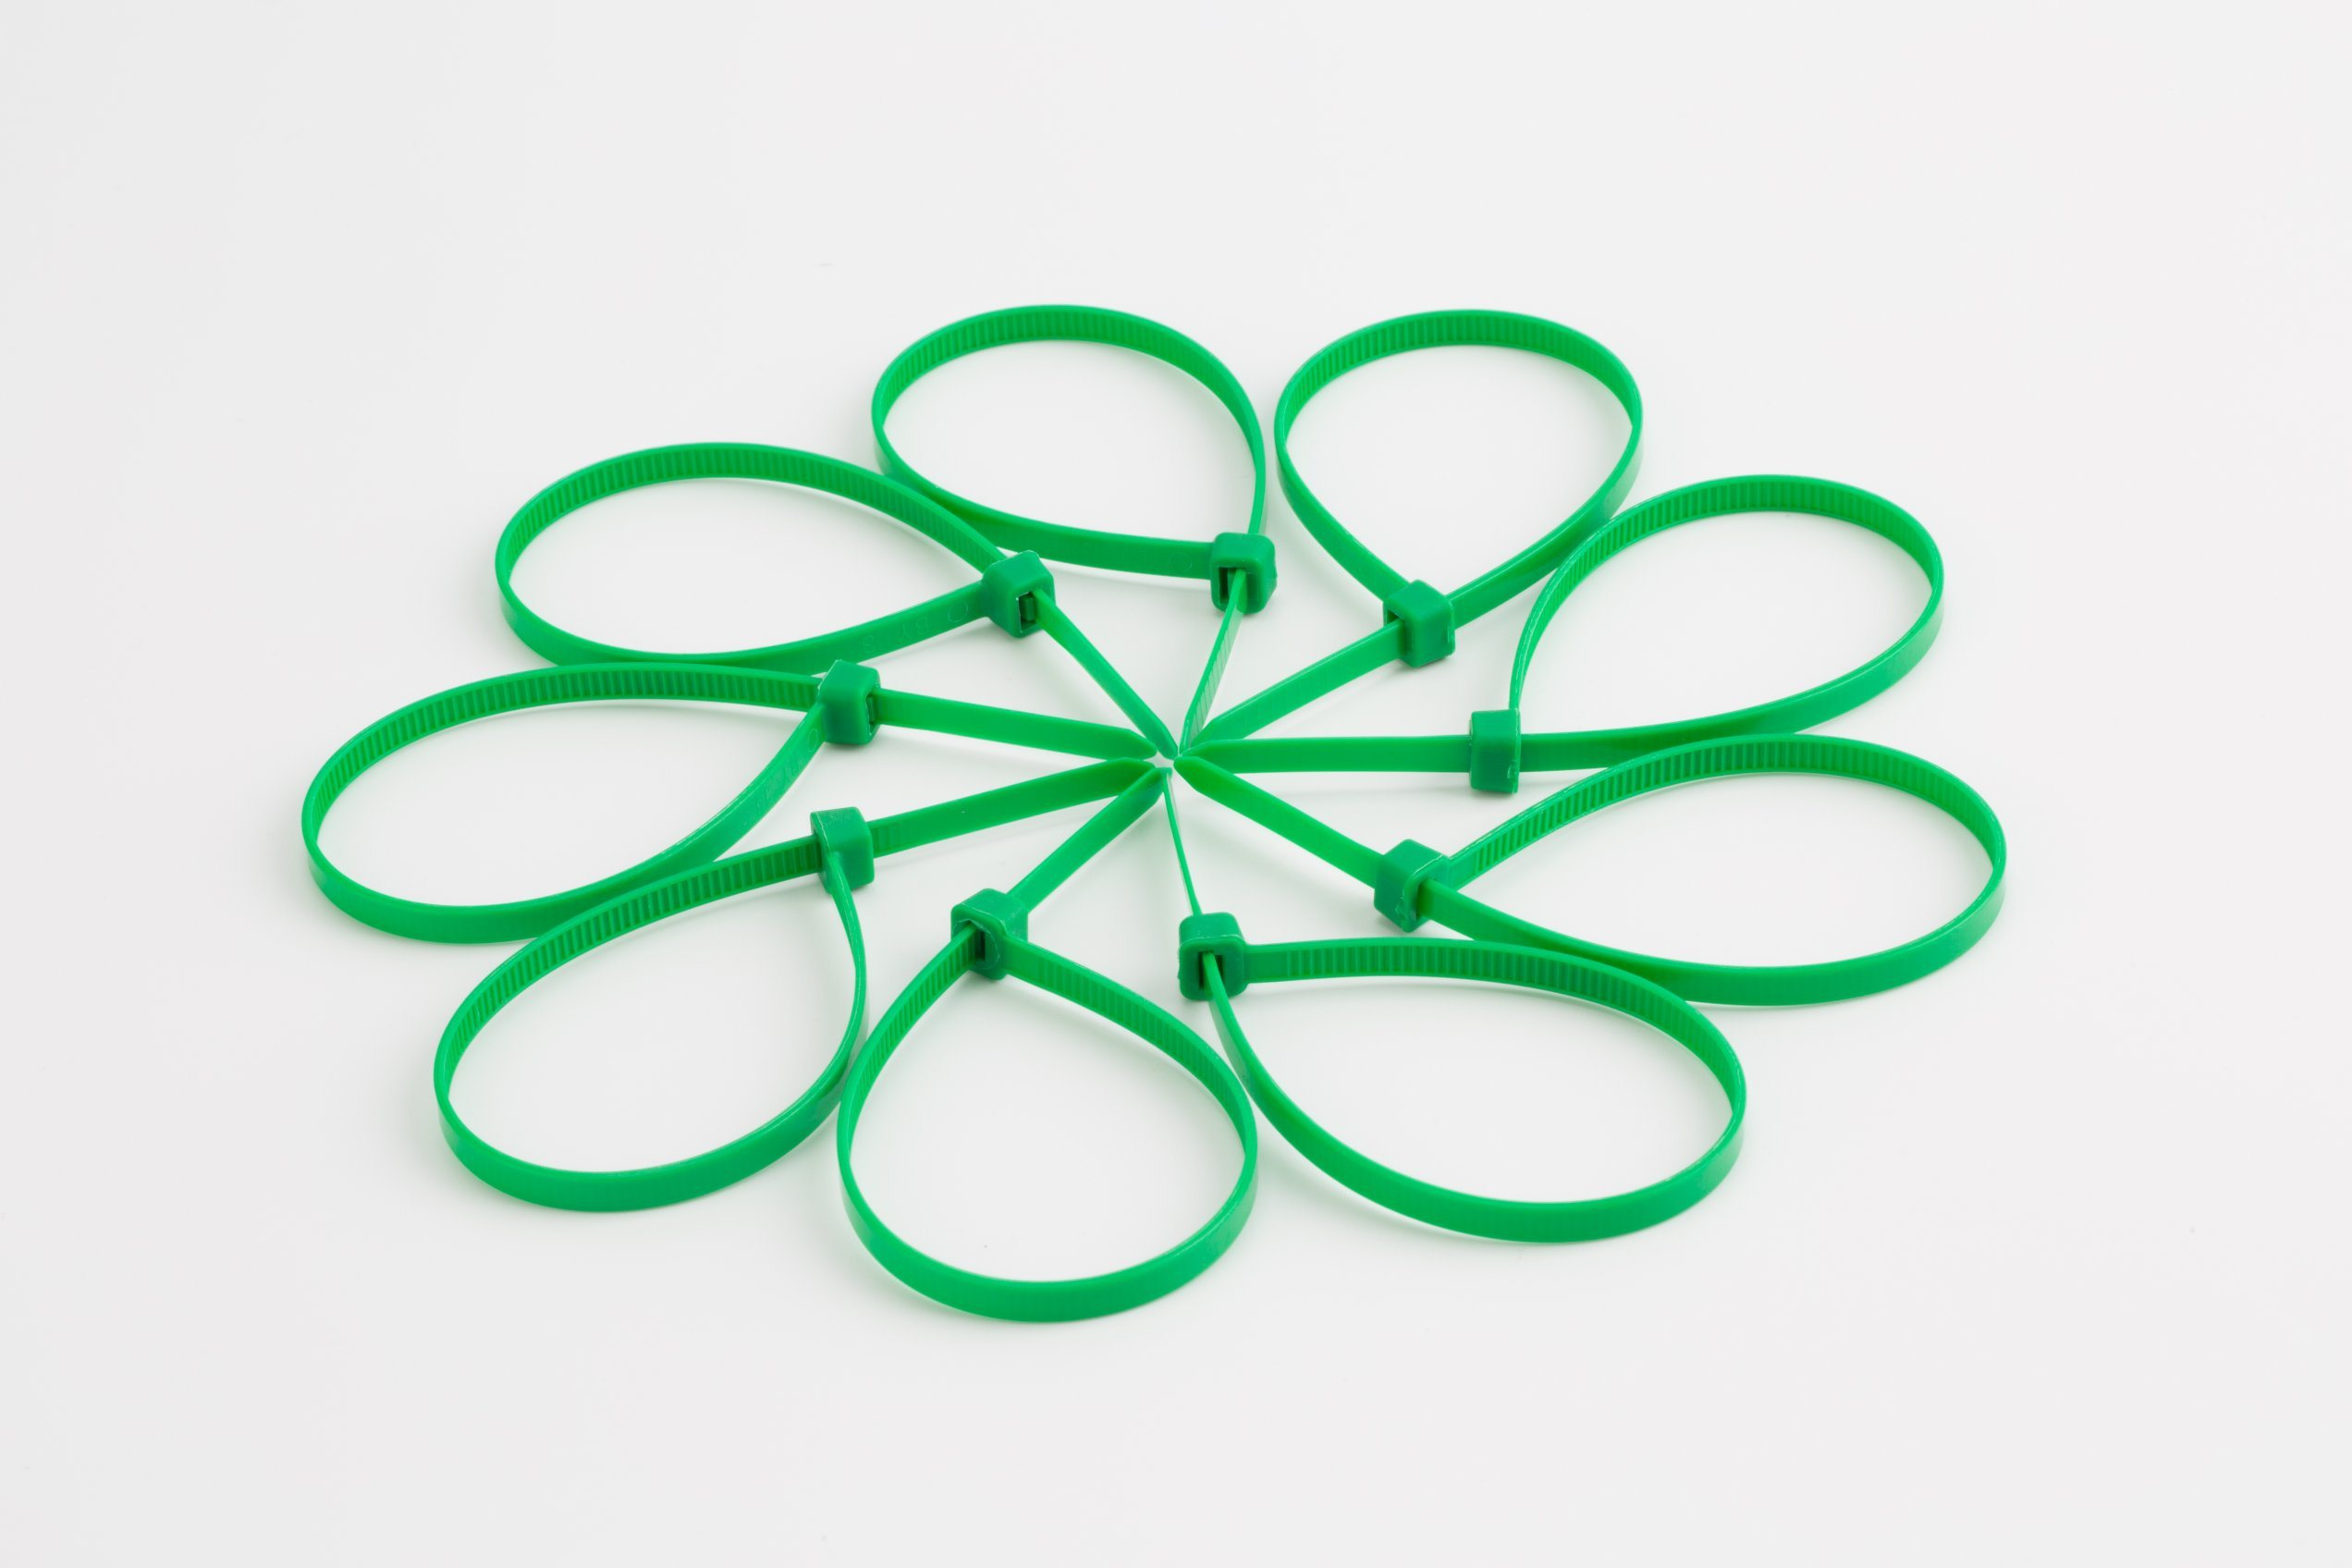 Cable Ties, Made of Nylon 66, Customized Colors Are Accepted